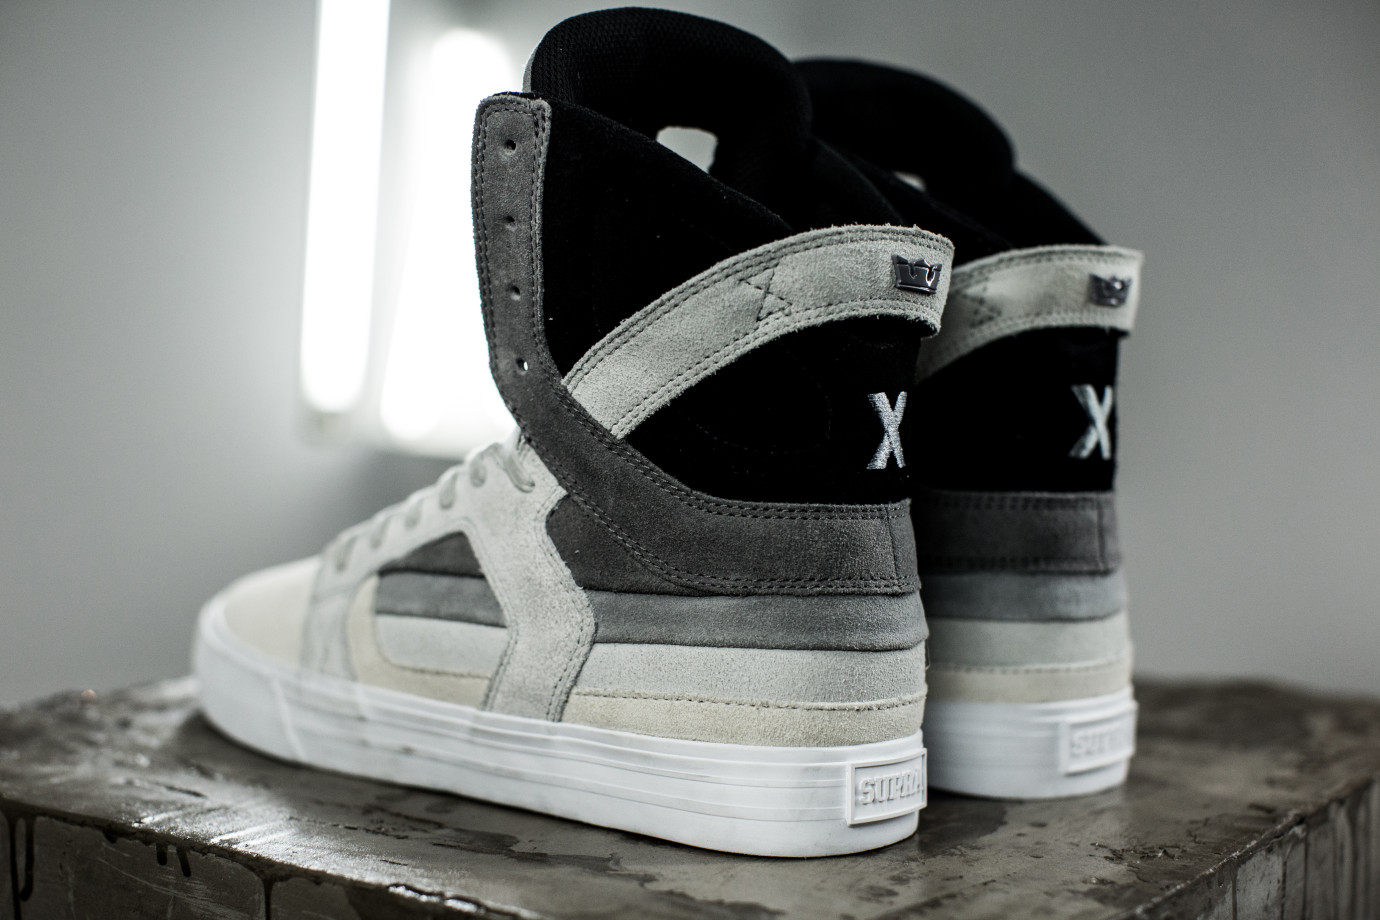 DECADE X ‒ SKYTOP II TRANSITIONS